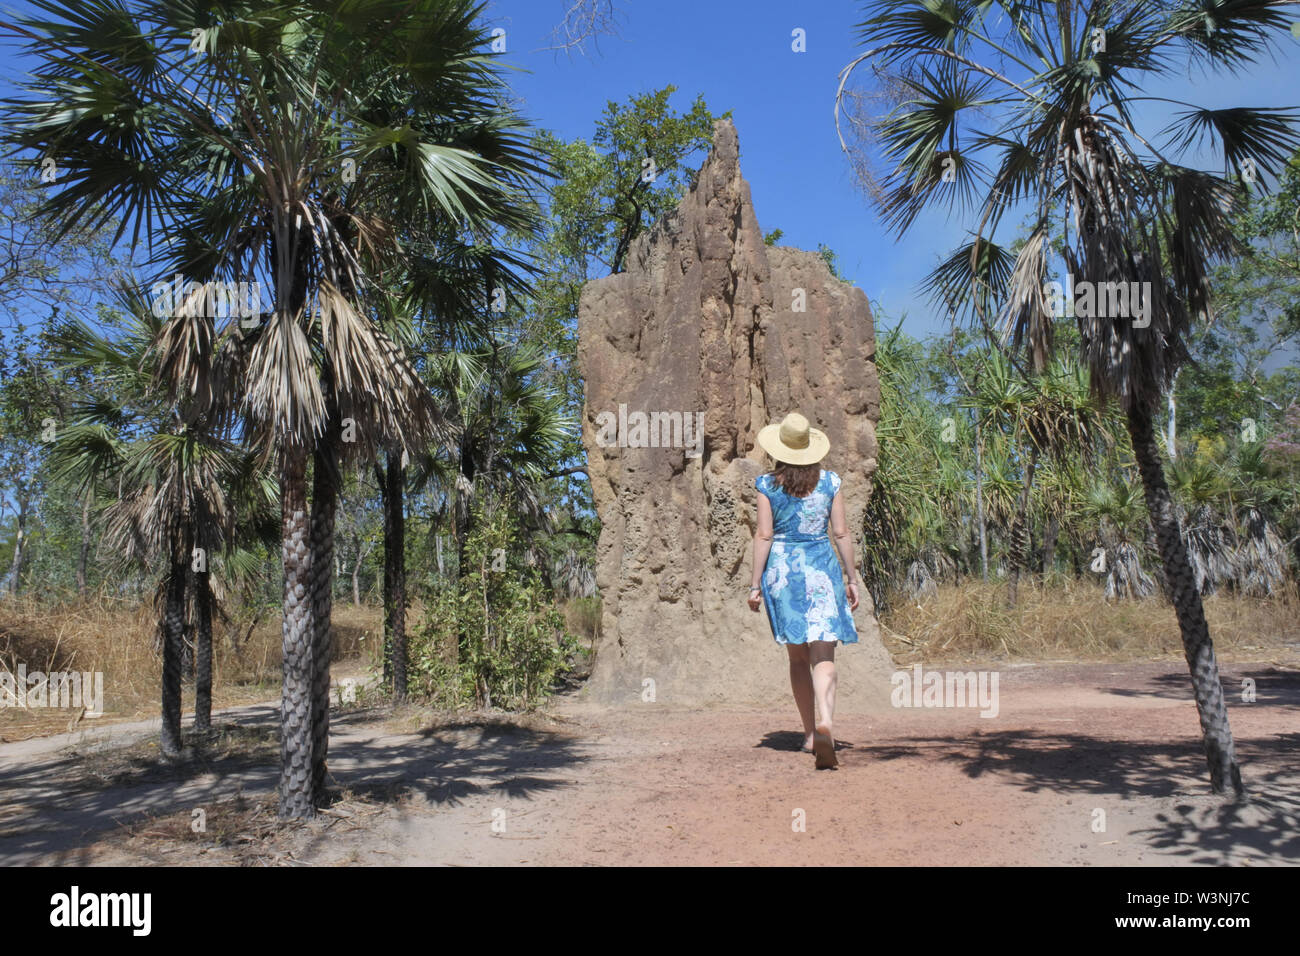 Australian adult woman tourist looking at Cathedral termite mound in Litchfield National Park in the Northern Territory of Australia. - Stock Image